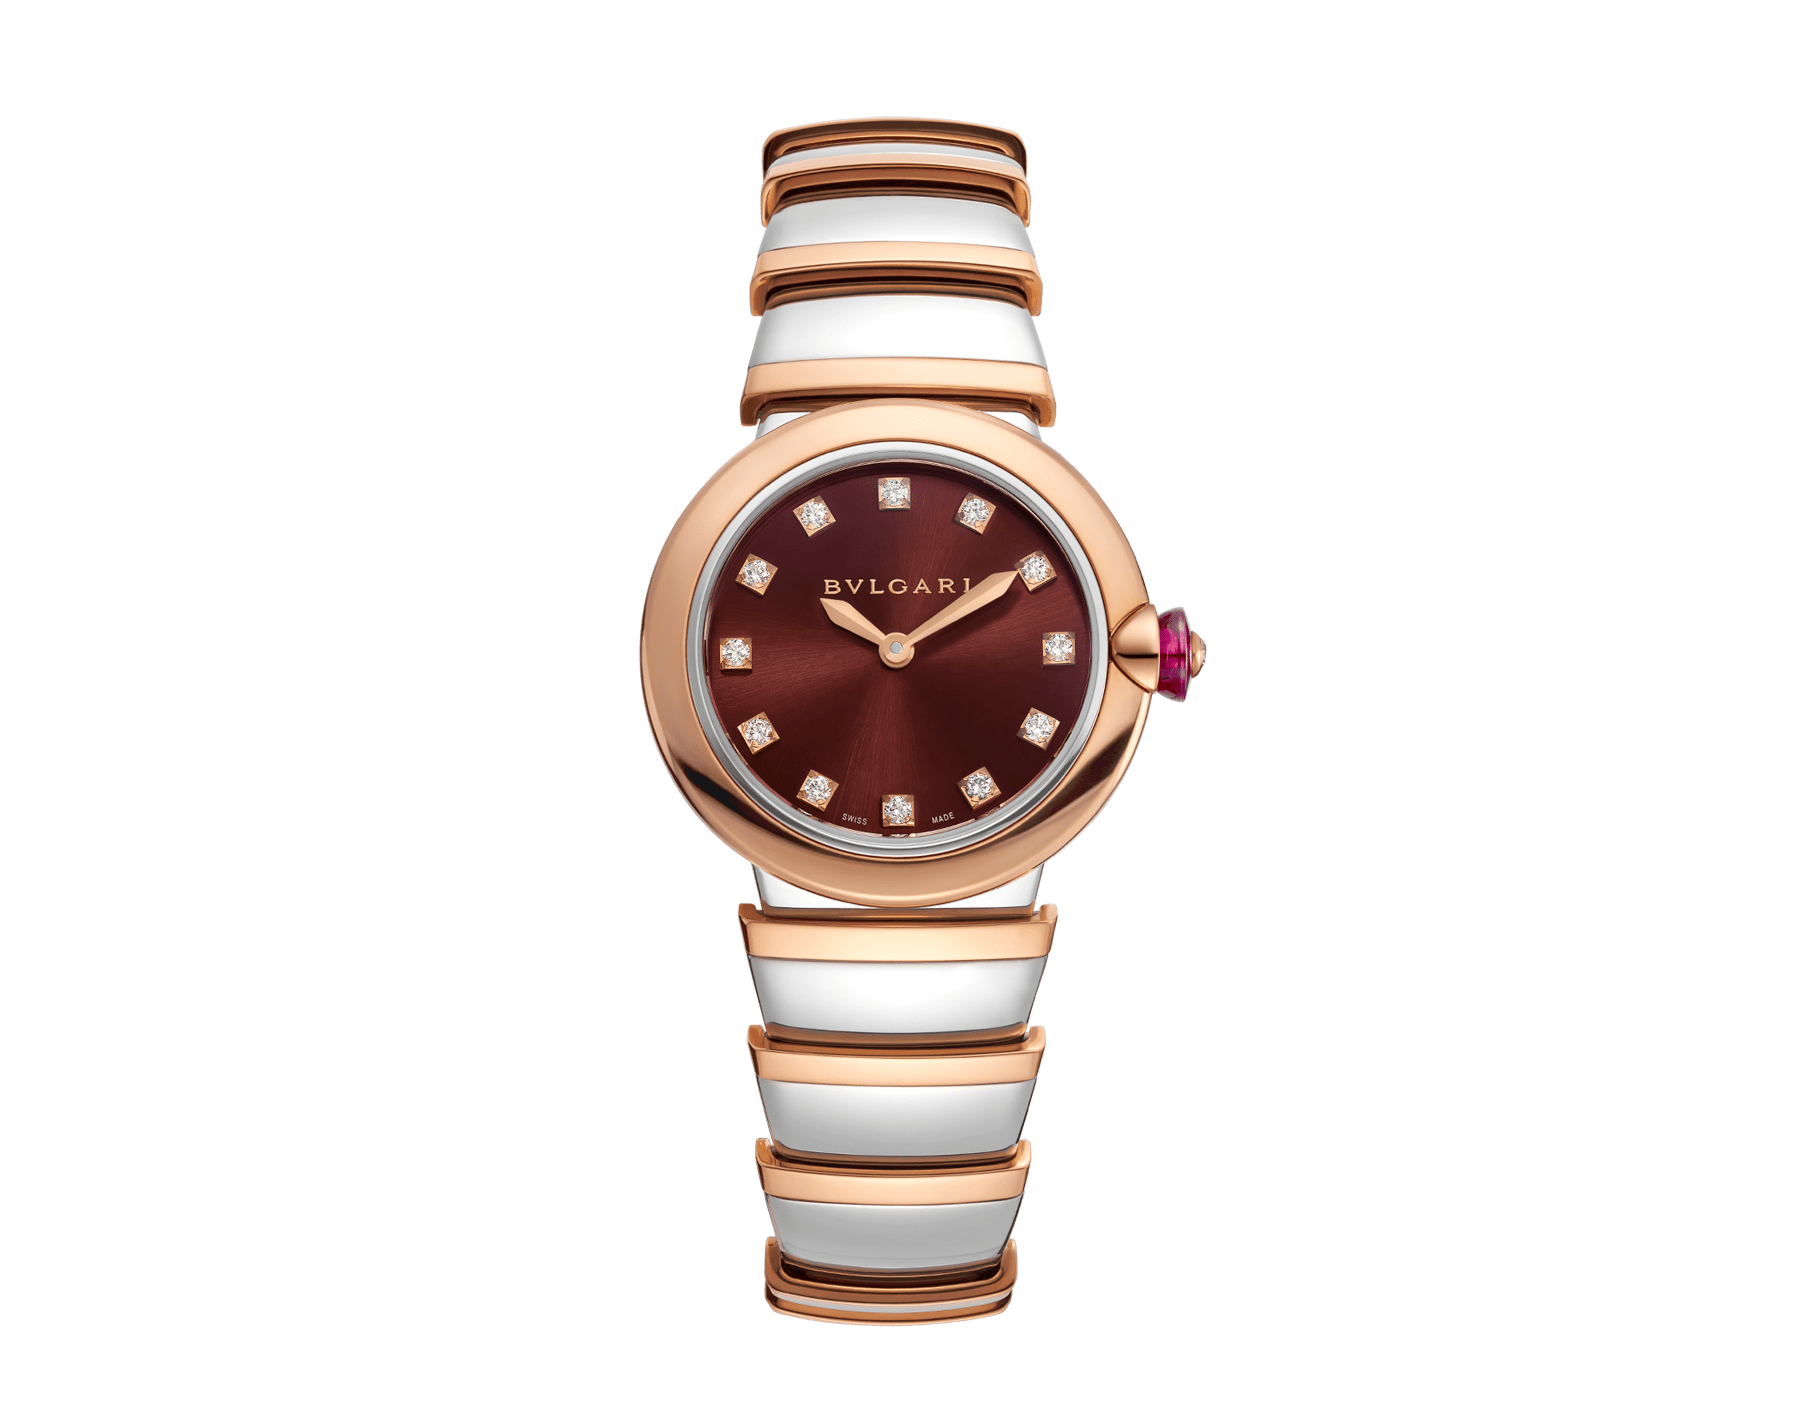 LVCEA watch in 18kt rose gold and stainless steel case and bracelet, and brown dial set with diamond indexes. 102691 image 1